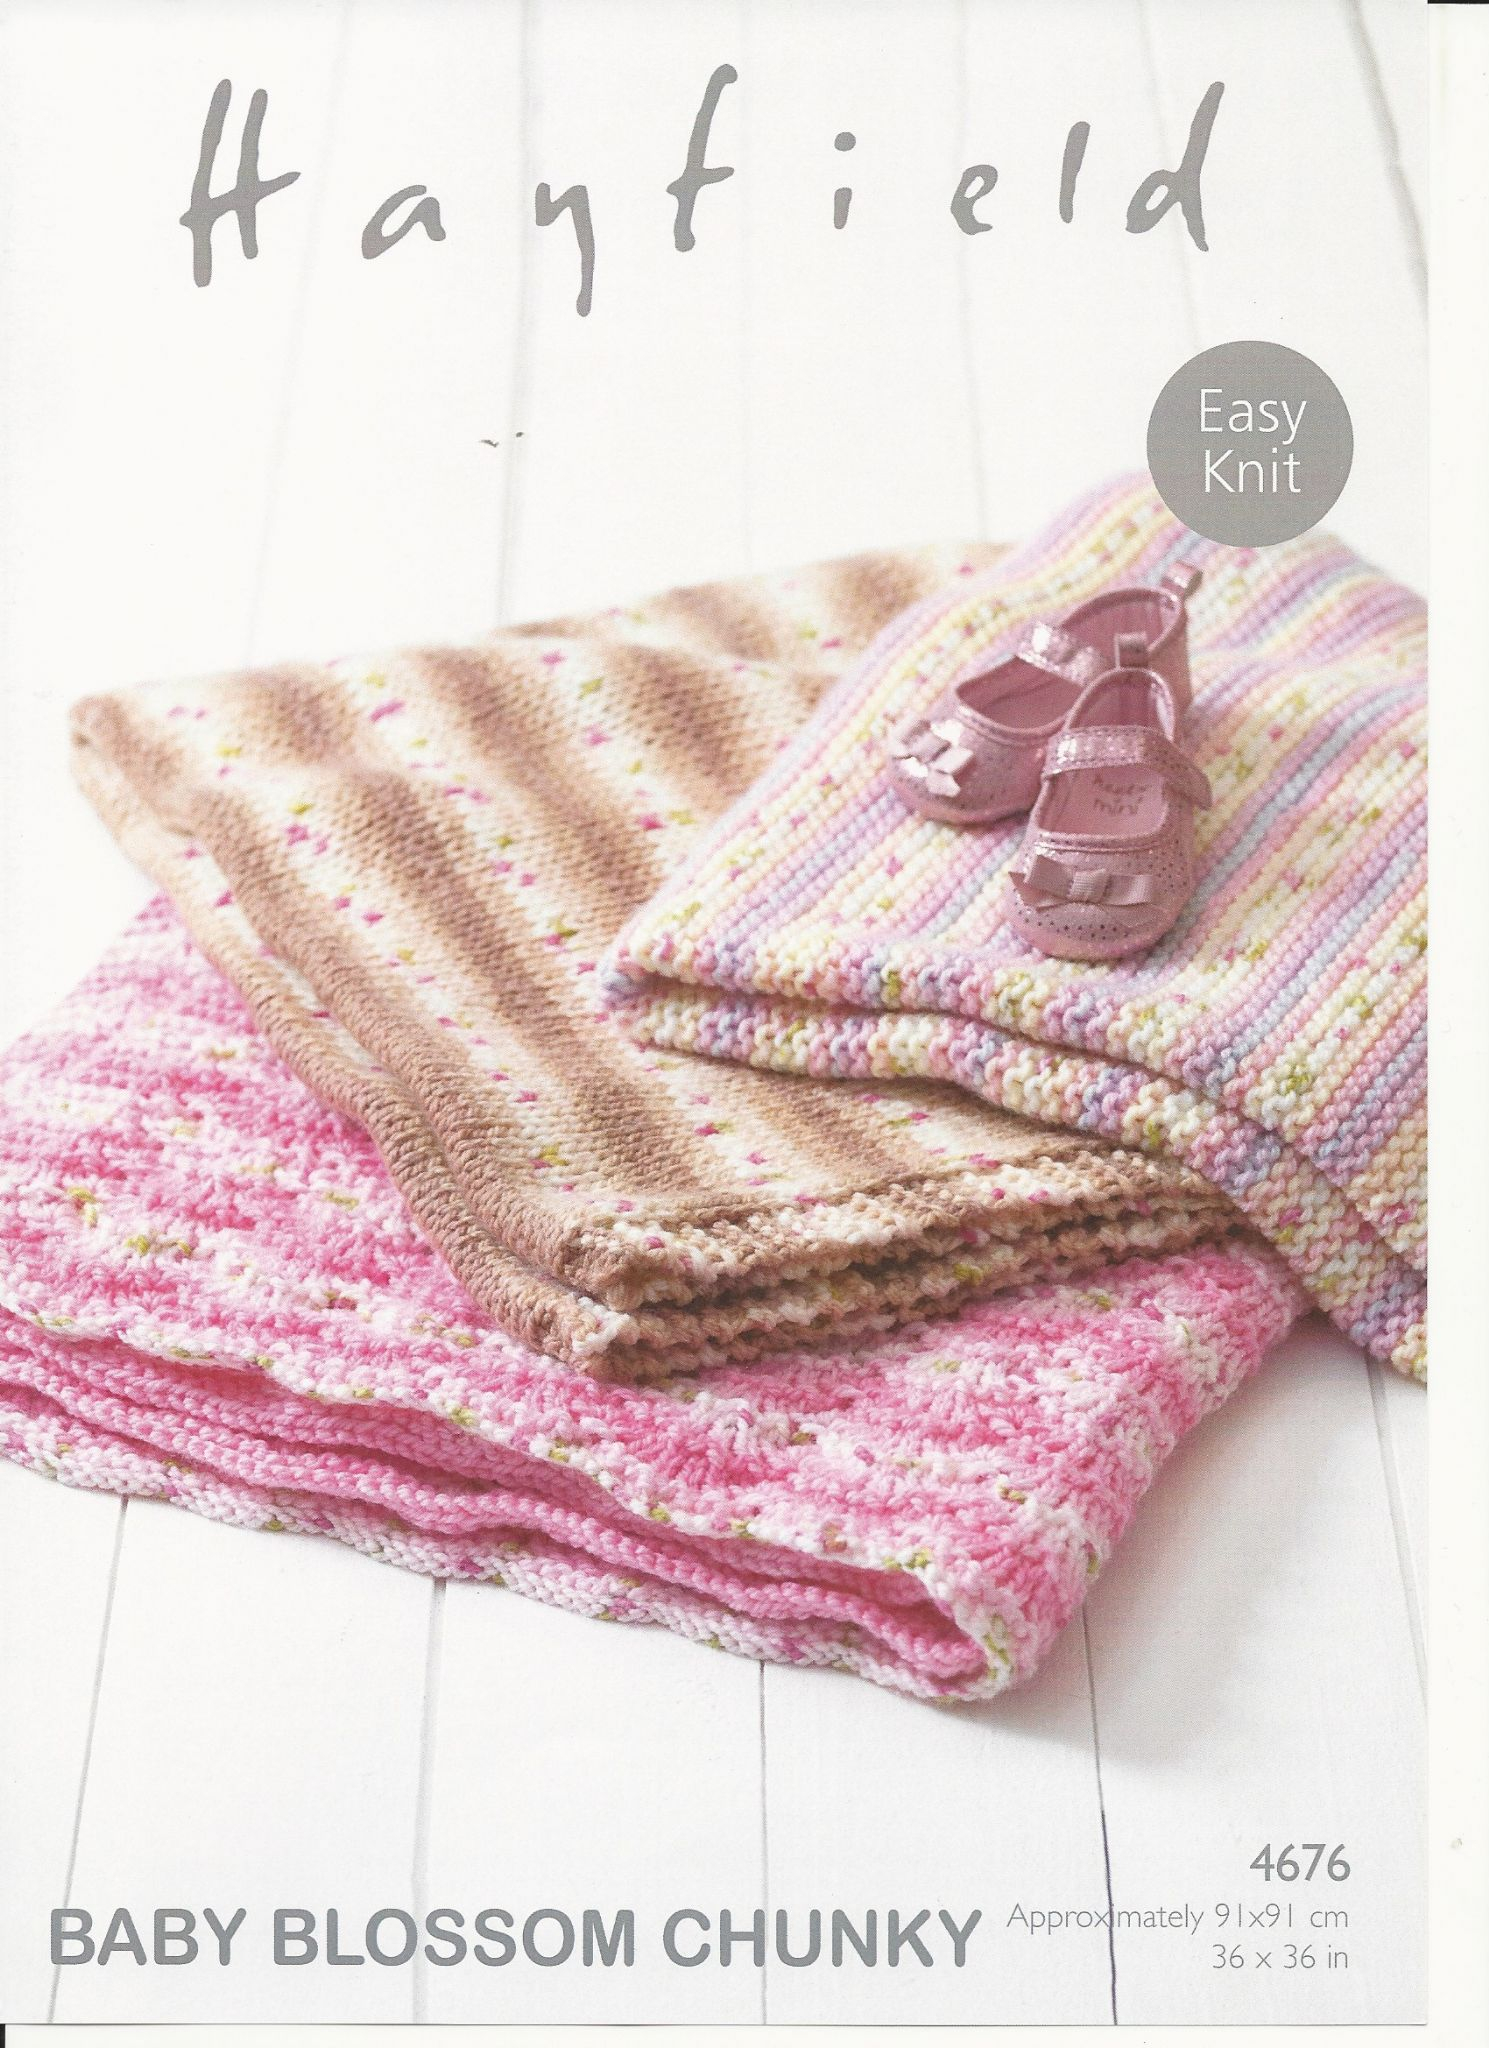 Knitting Pattern For Baby Blankets Hayfield Babies Blankets Knitting Pattern In Ba Blossom Chunky 4676